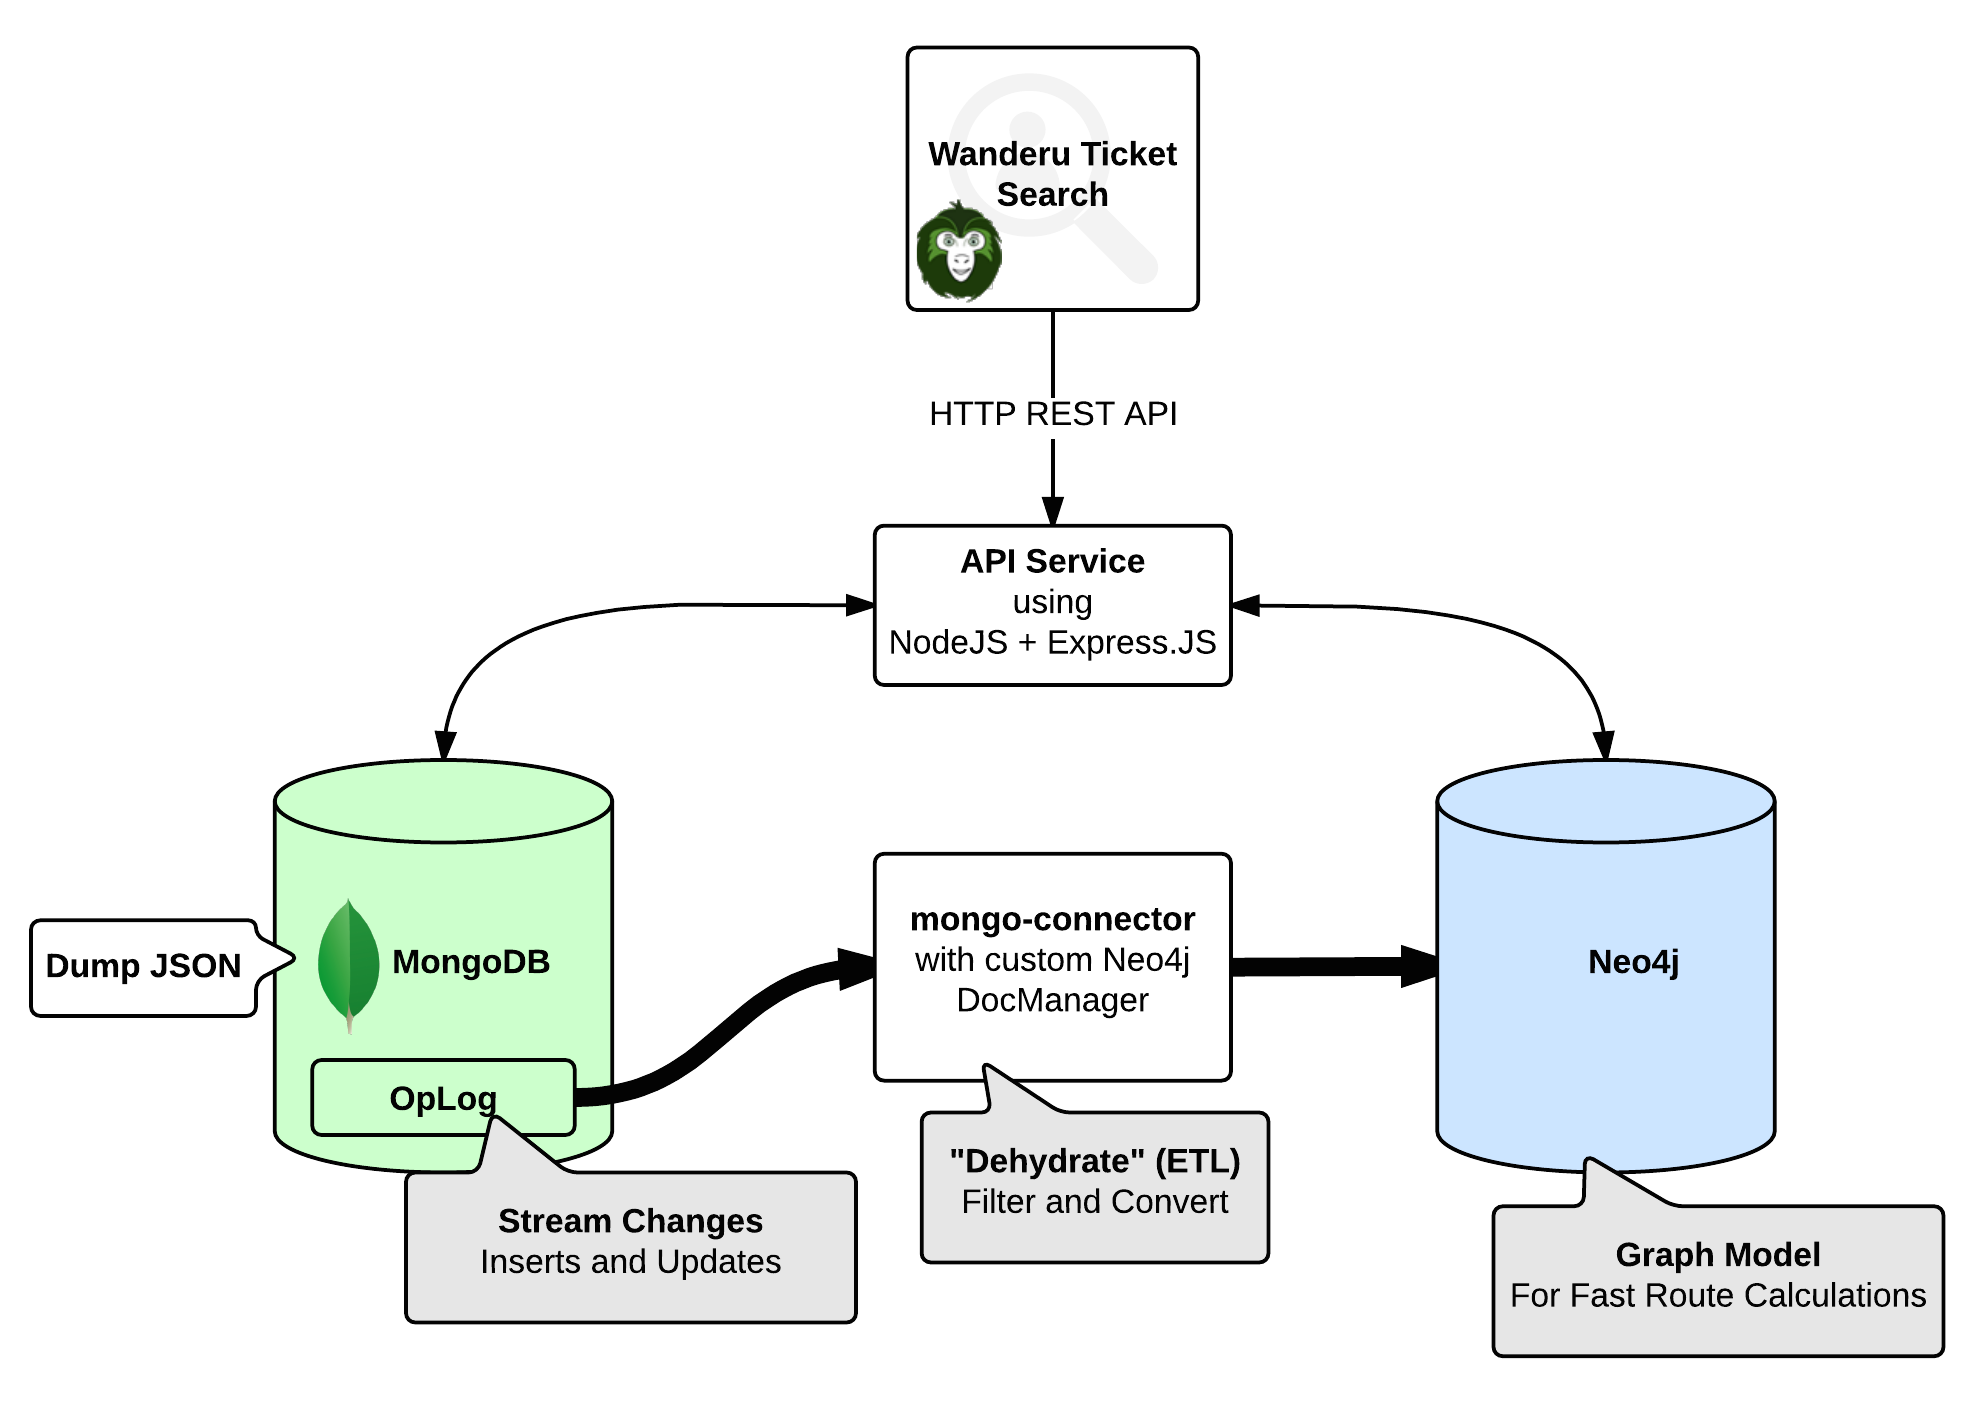 Wanderu's polyglot persistence architecture between mongoDB and Neo4j